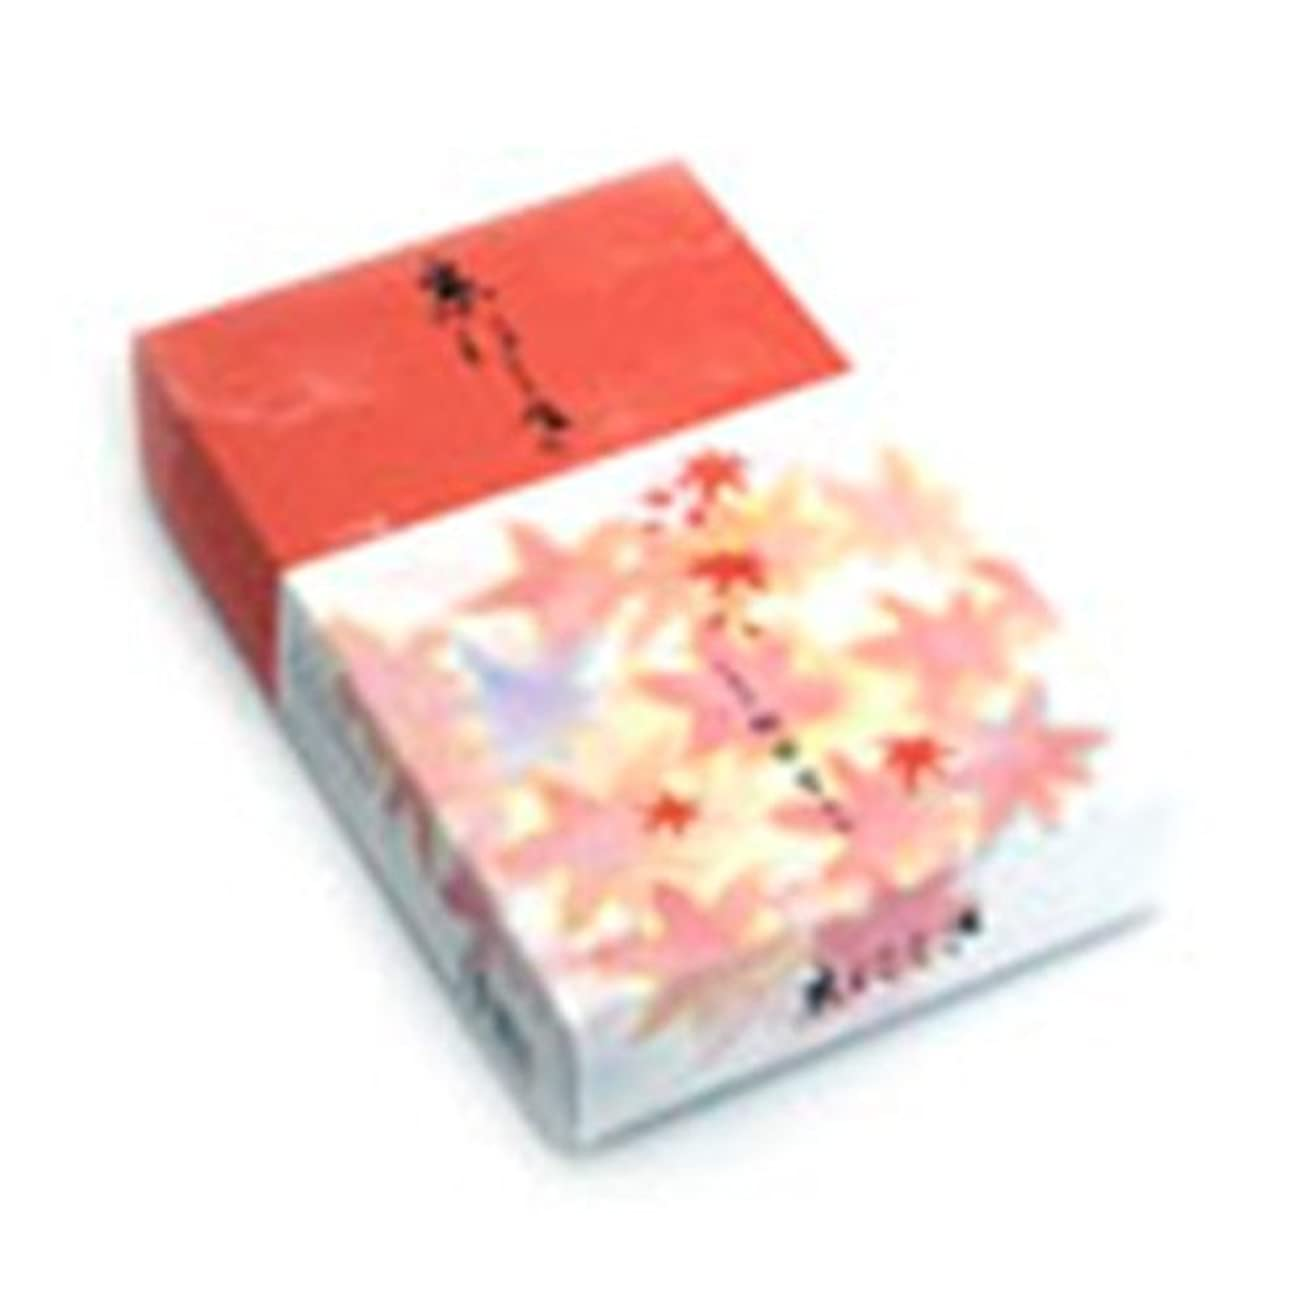 困惑する逆不振Shoyeido's Kyoto Autumn Leaves Incense, 450 Sticks - Kyo-nishiki, New, Free Ship